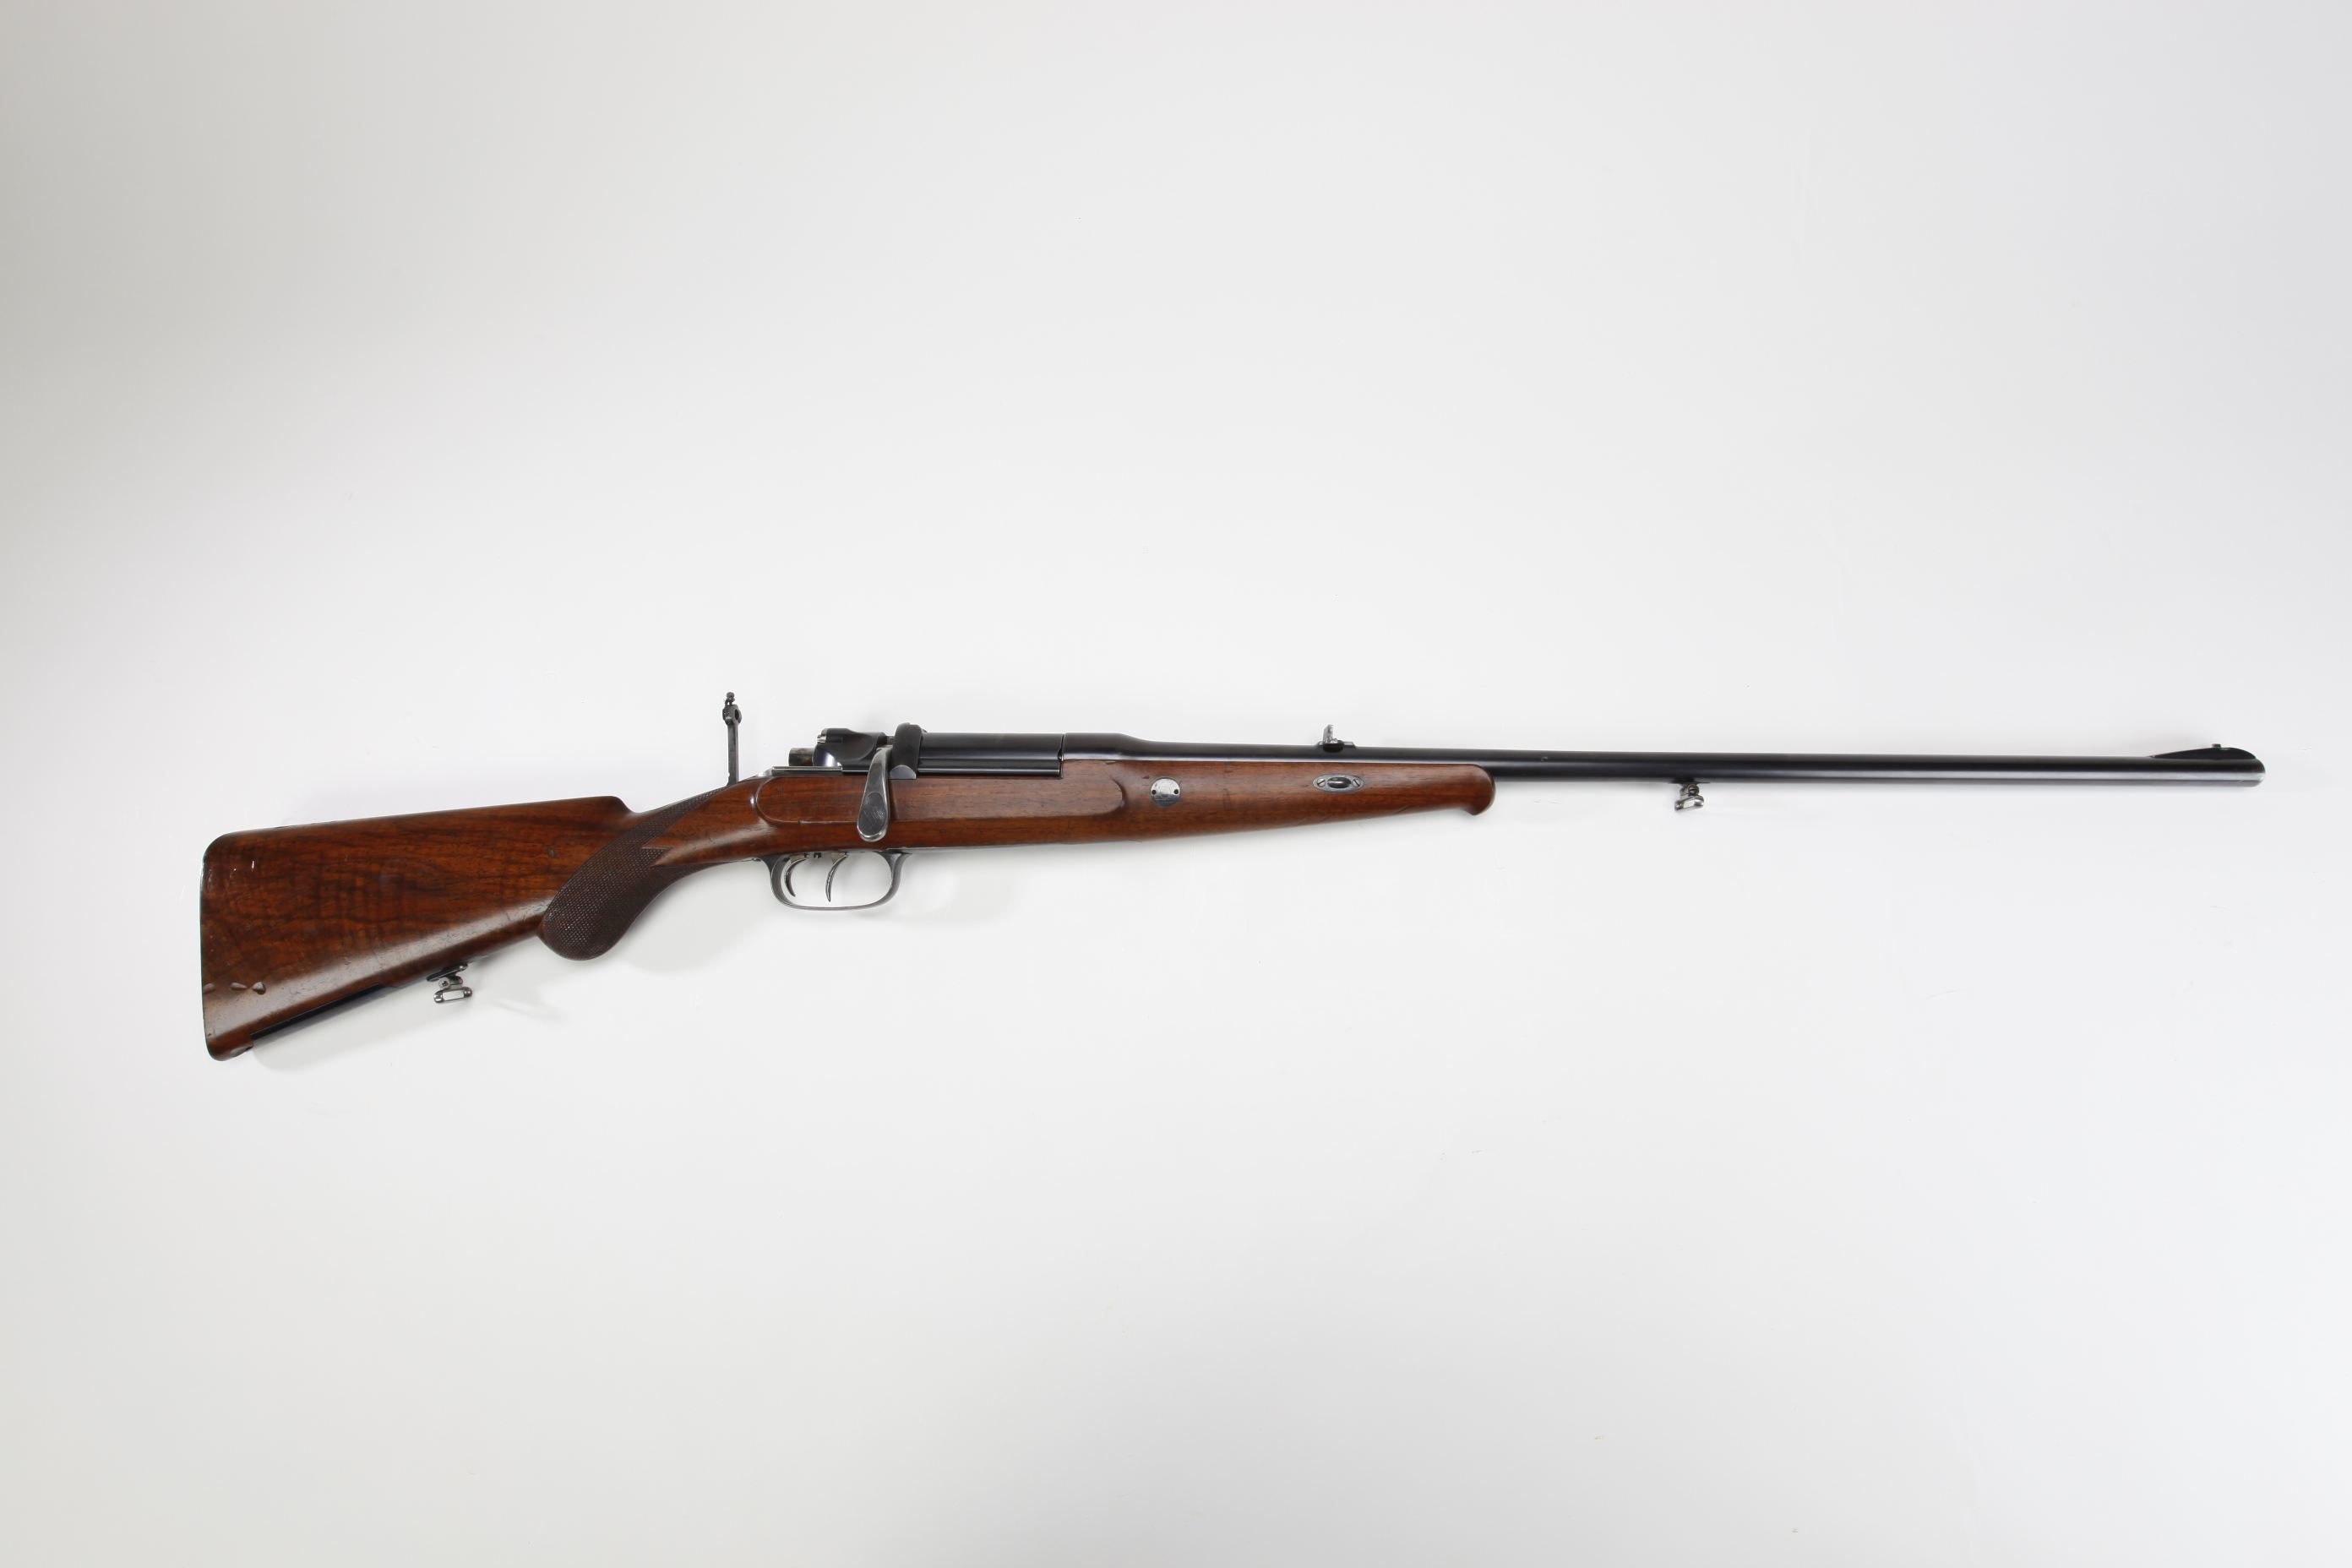 Spandau M1888 Sporter Rifle Attributed to Kaiser Wilhelm